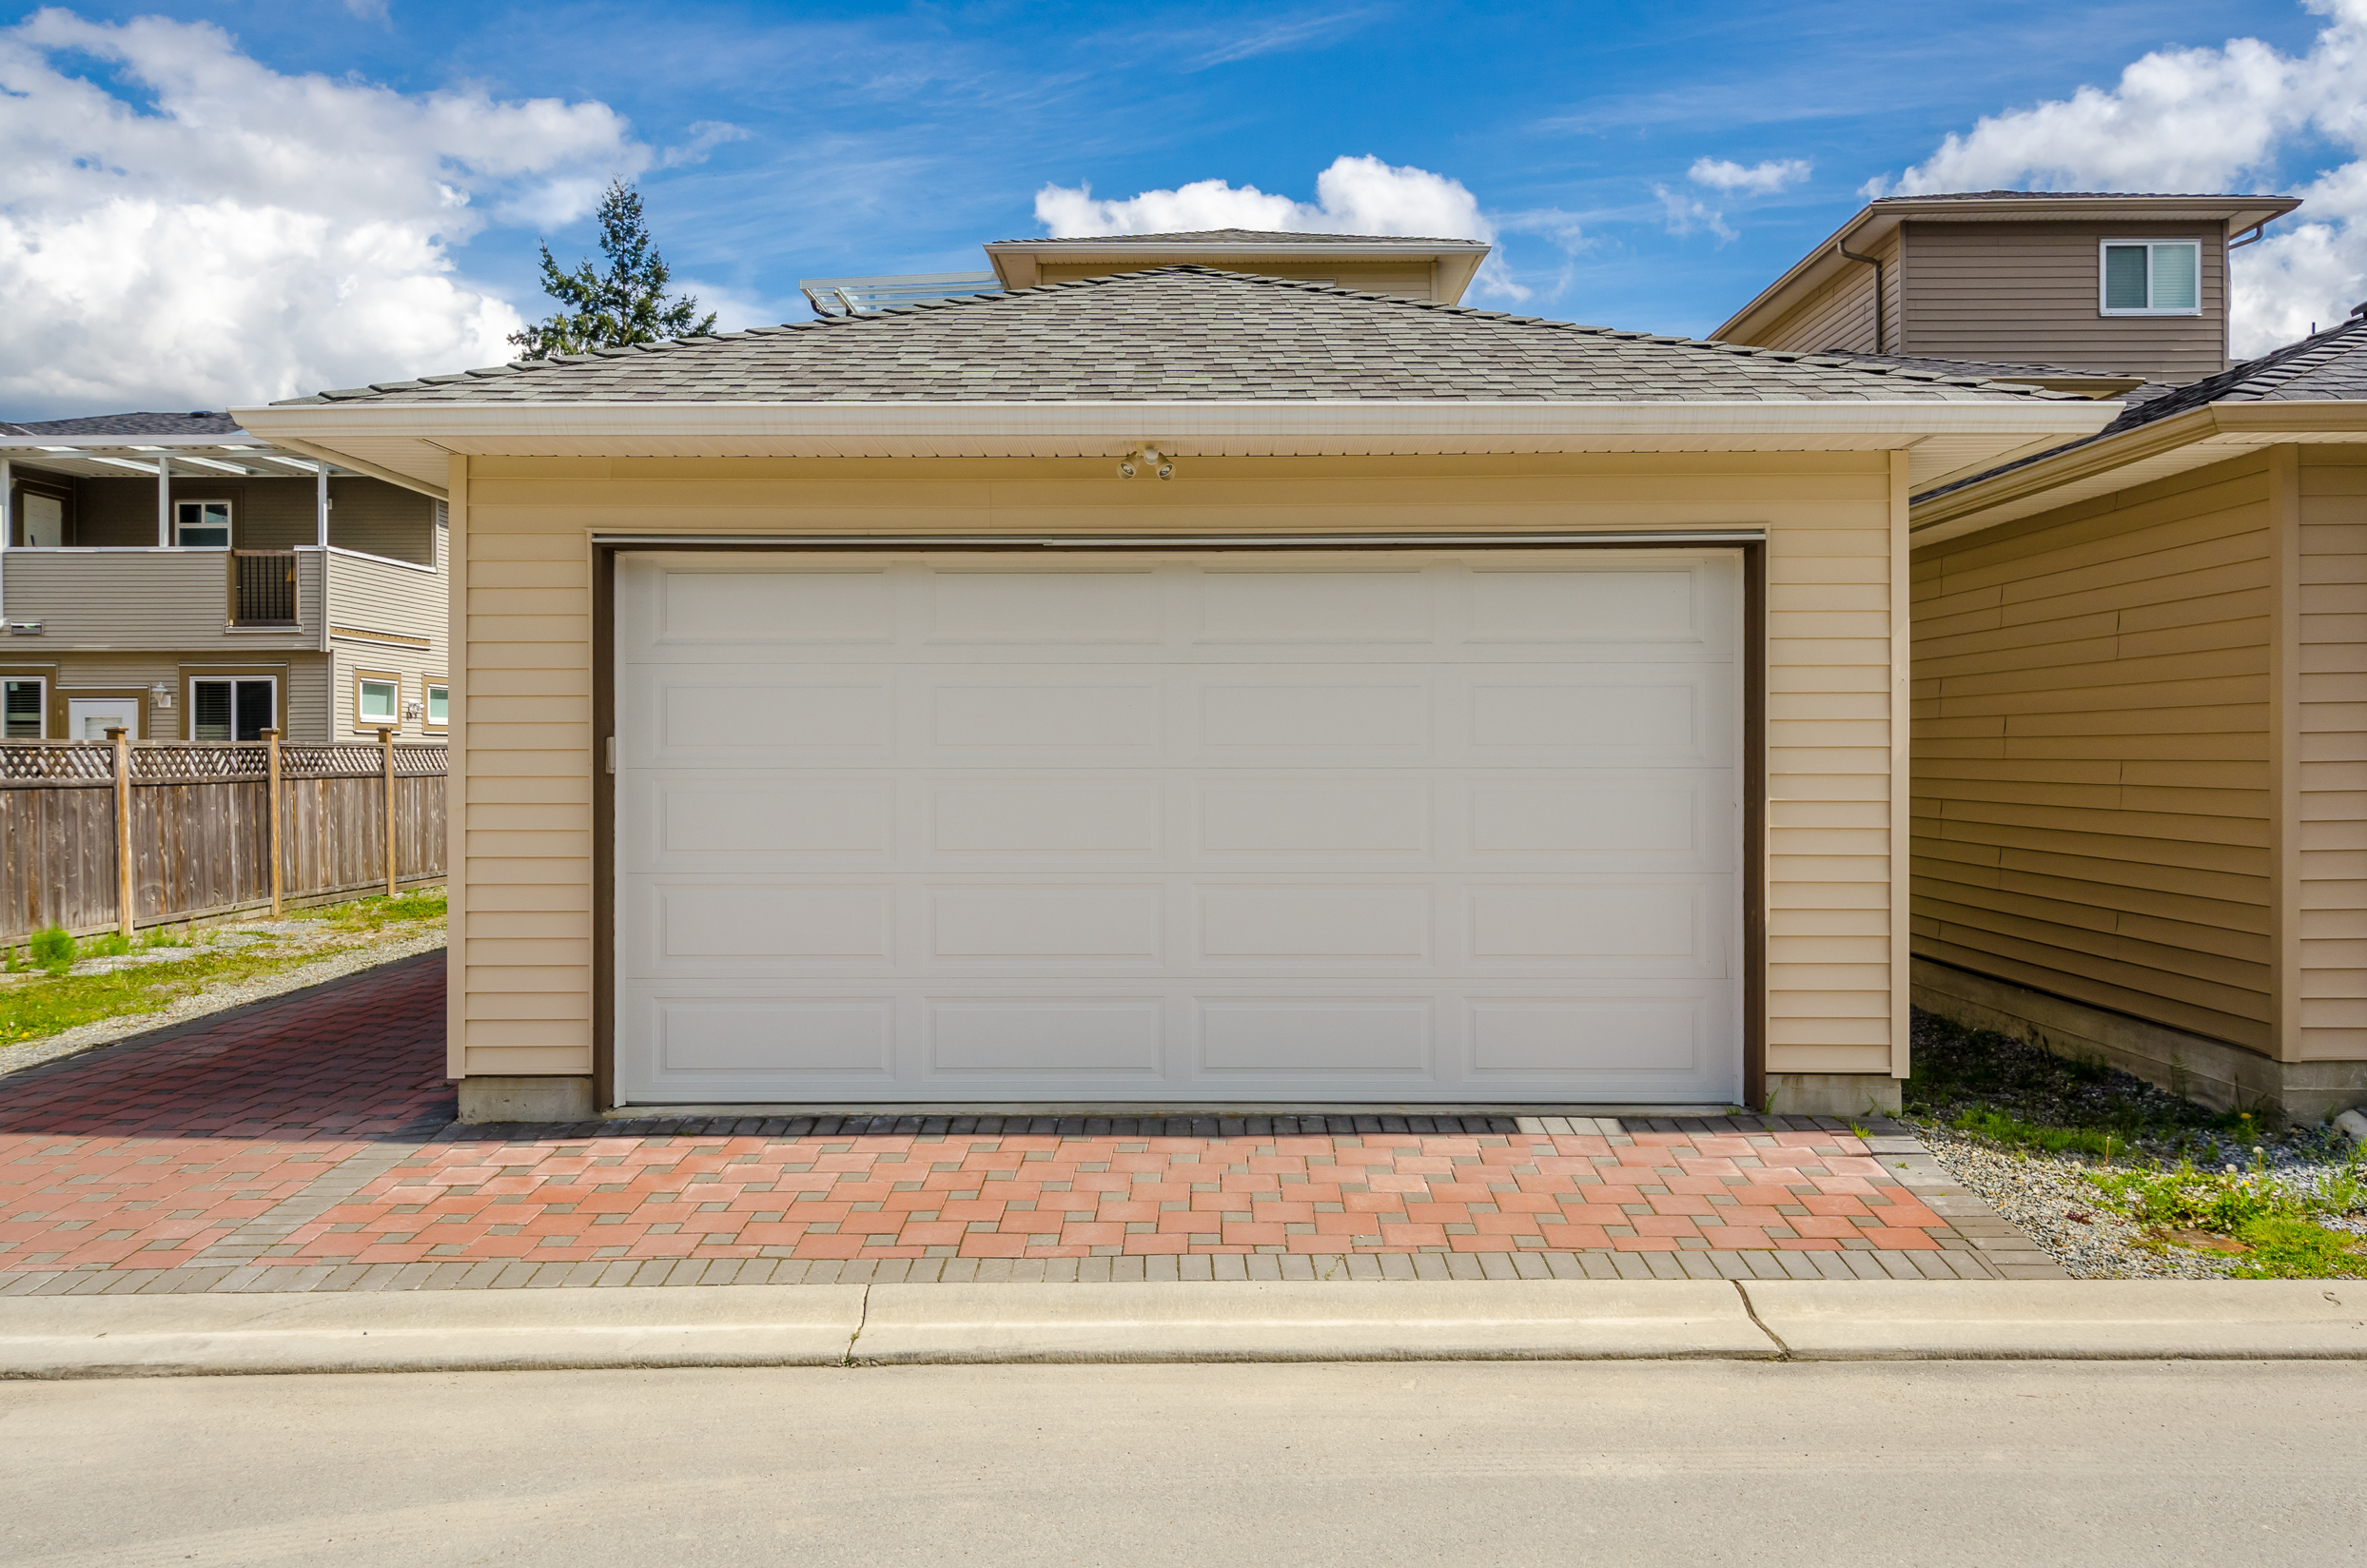 How To Assess The Performance And Safety Of Your Garage Door Sugar